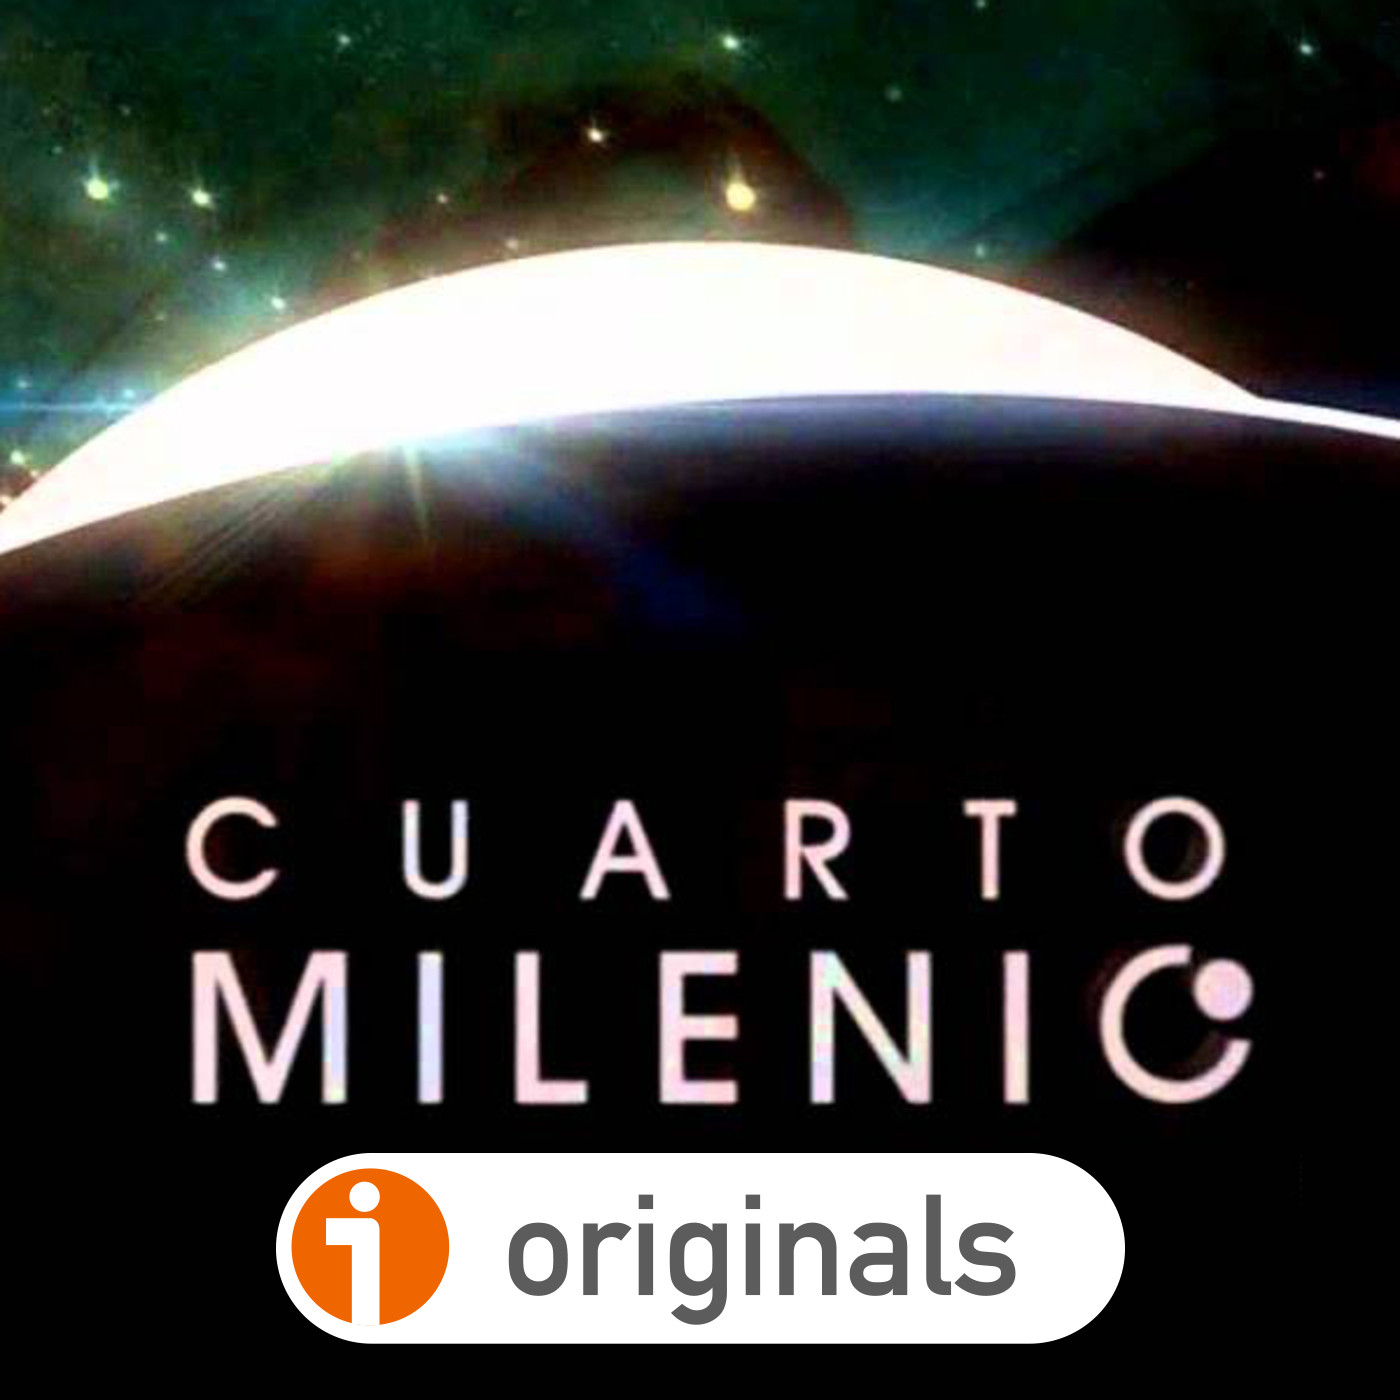 Cuarto Milenio (Oficial) - Subscribe on Android